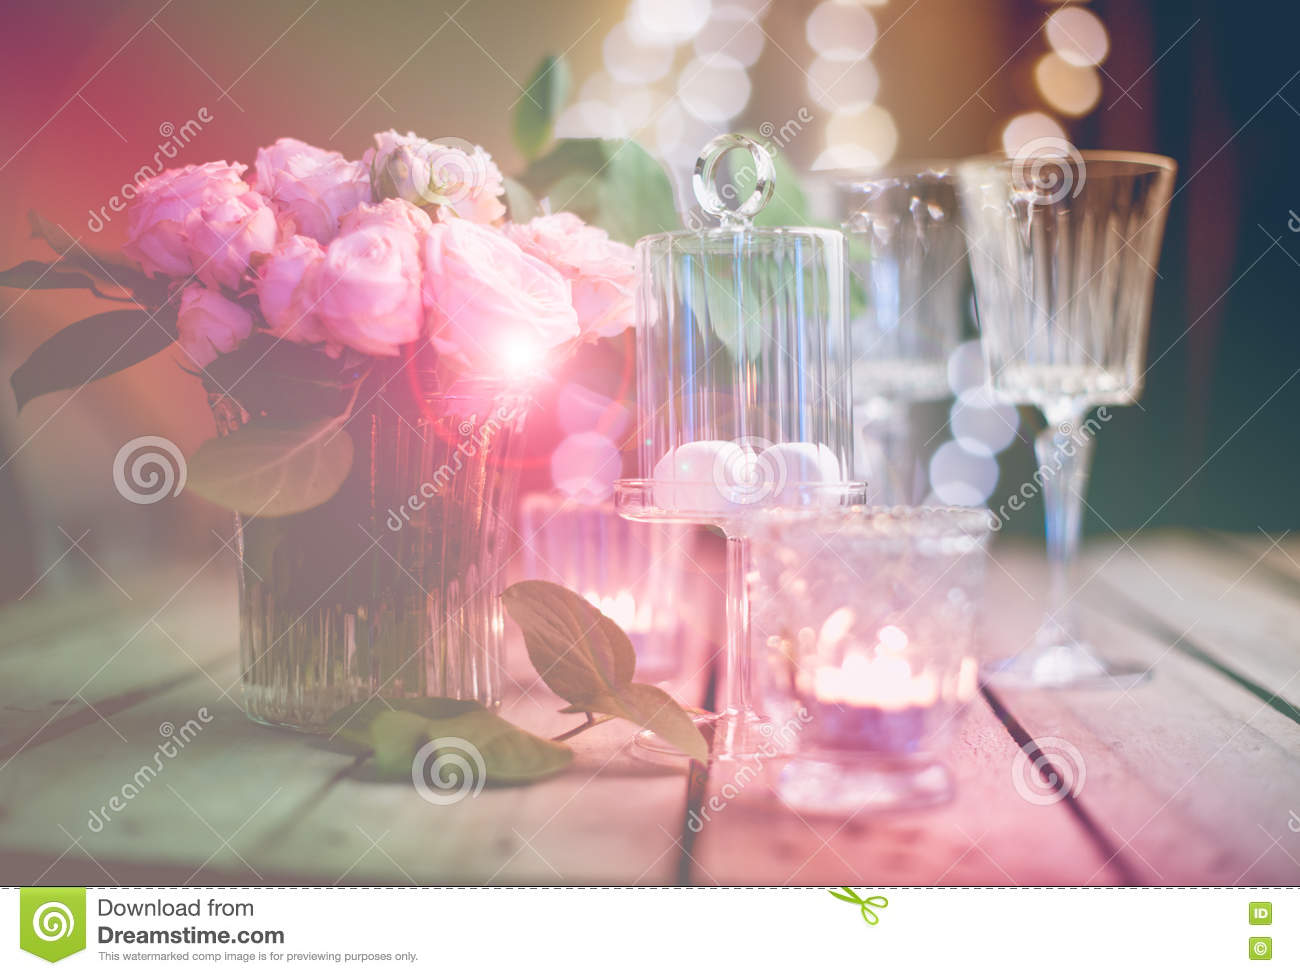 Elegant decorations wedding table lights Fairy Elegant Vintage Wedding Table Decoration With Roses And Candles Warm Night Light Filter Dreamstimecom Elegant Vintage Wedding Table Decoration With Roses And Candles